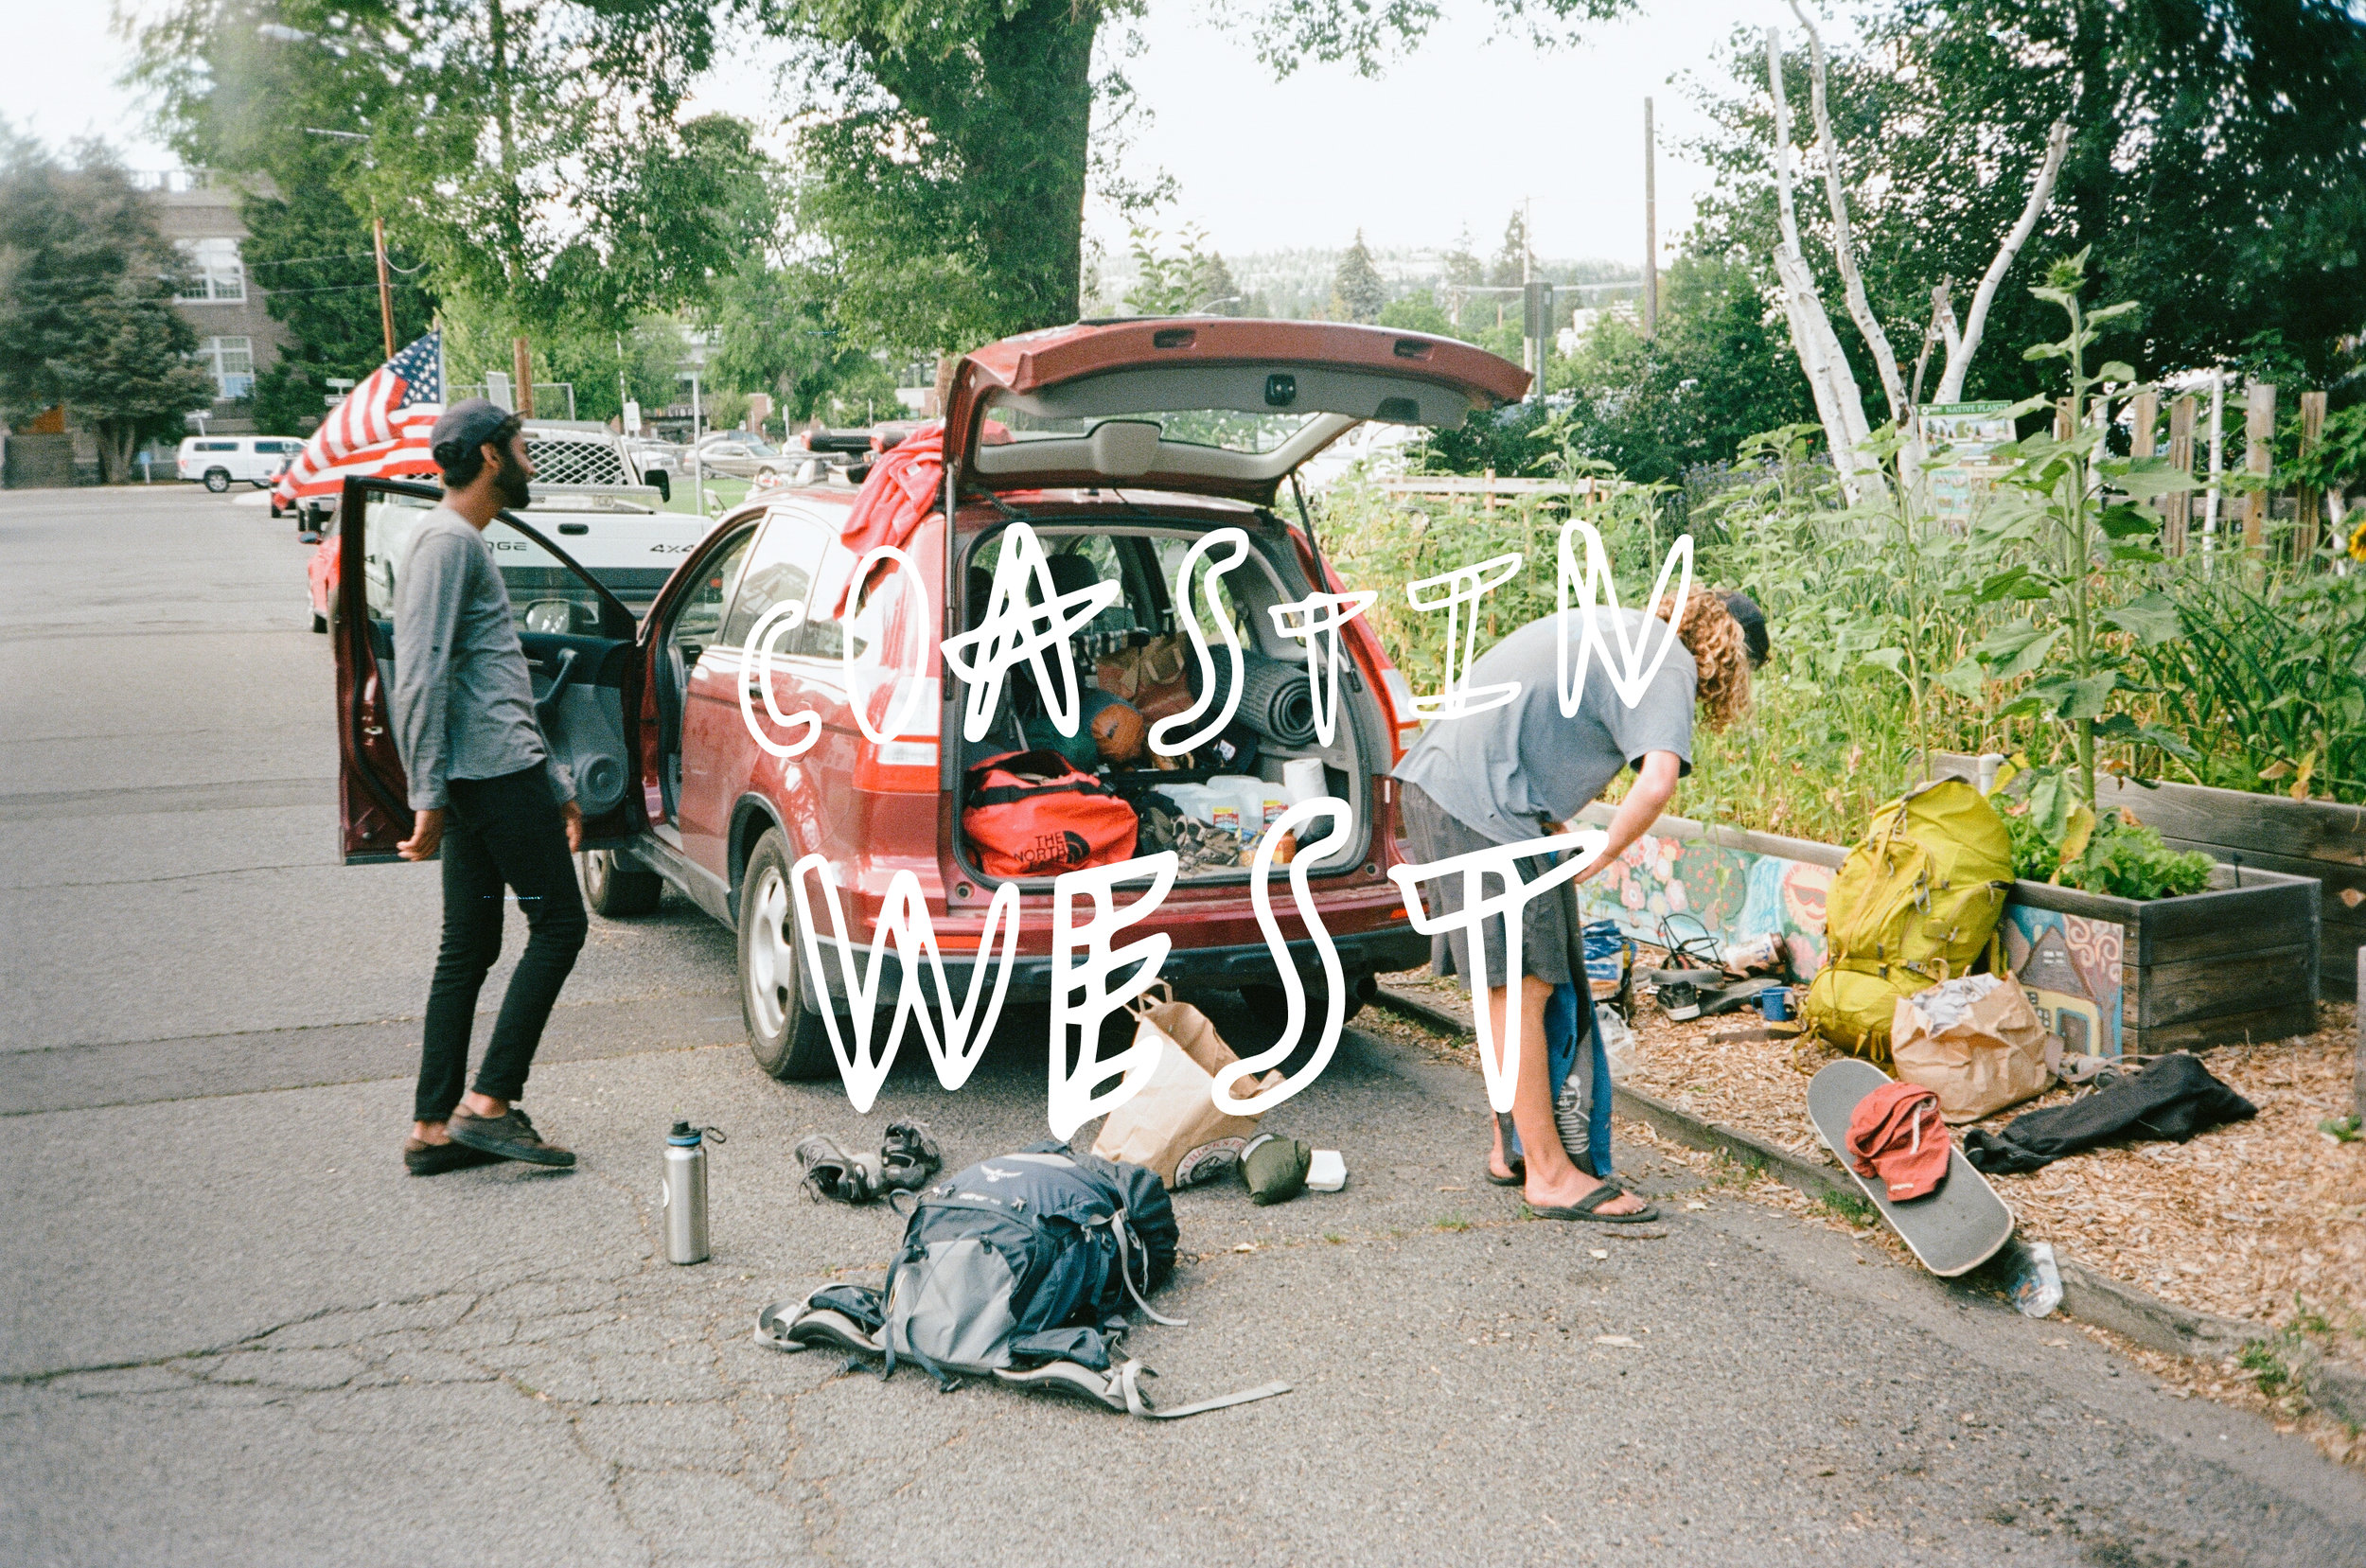 04.                            Words and Photos by Kellen Mohr